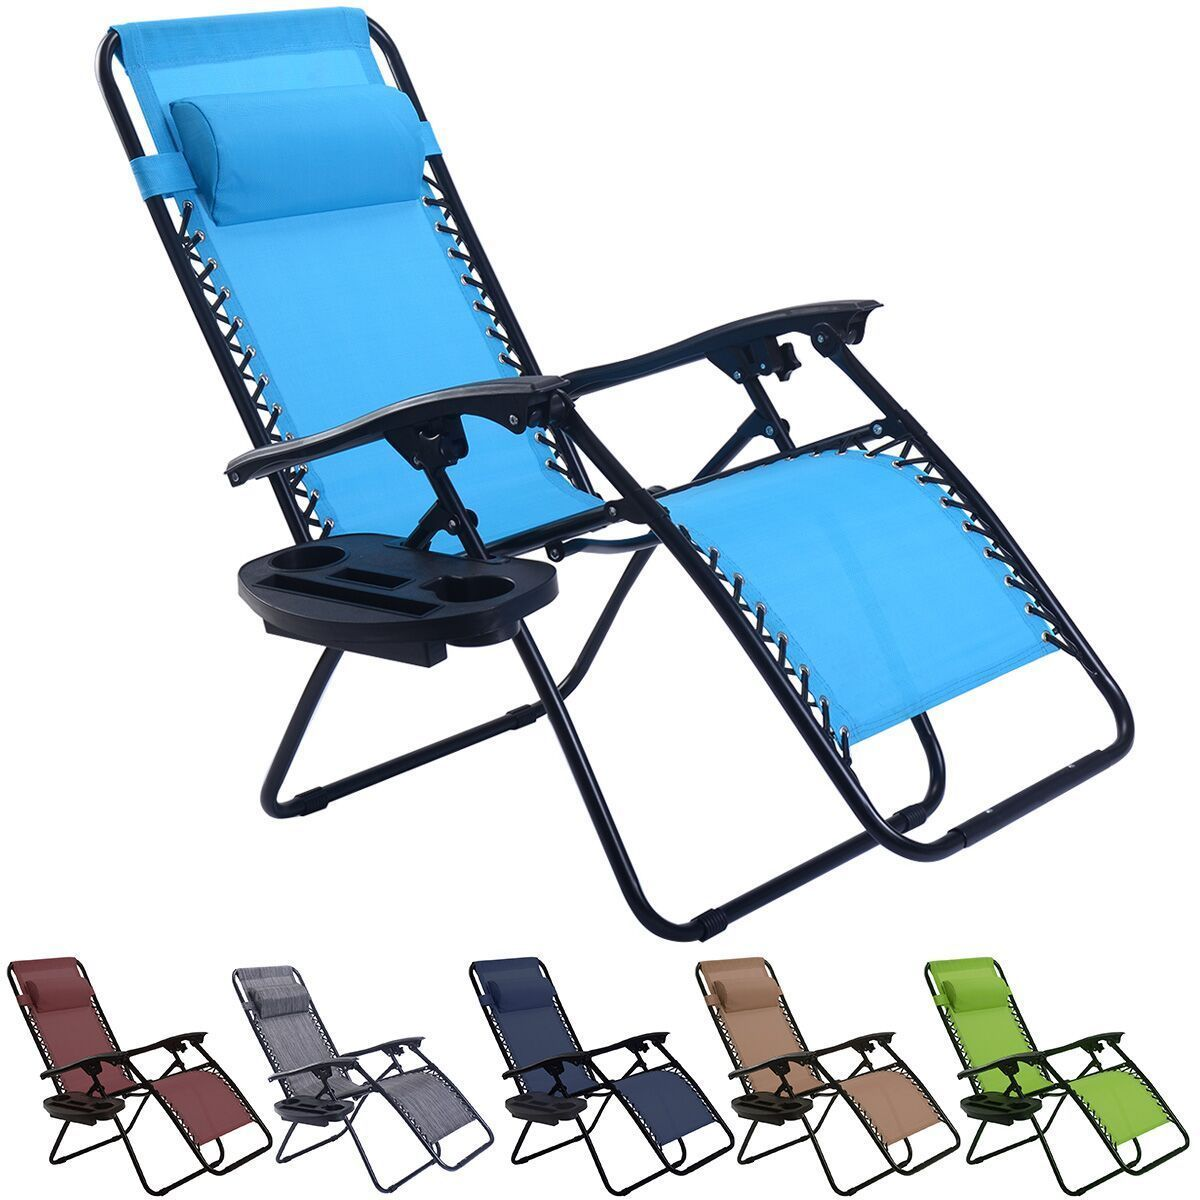 Folding Zero Gravity Reclining Lounge Chairs Outdoor Beach Patio W/Utility  Tray